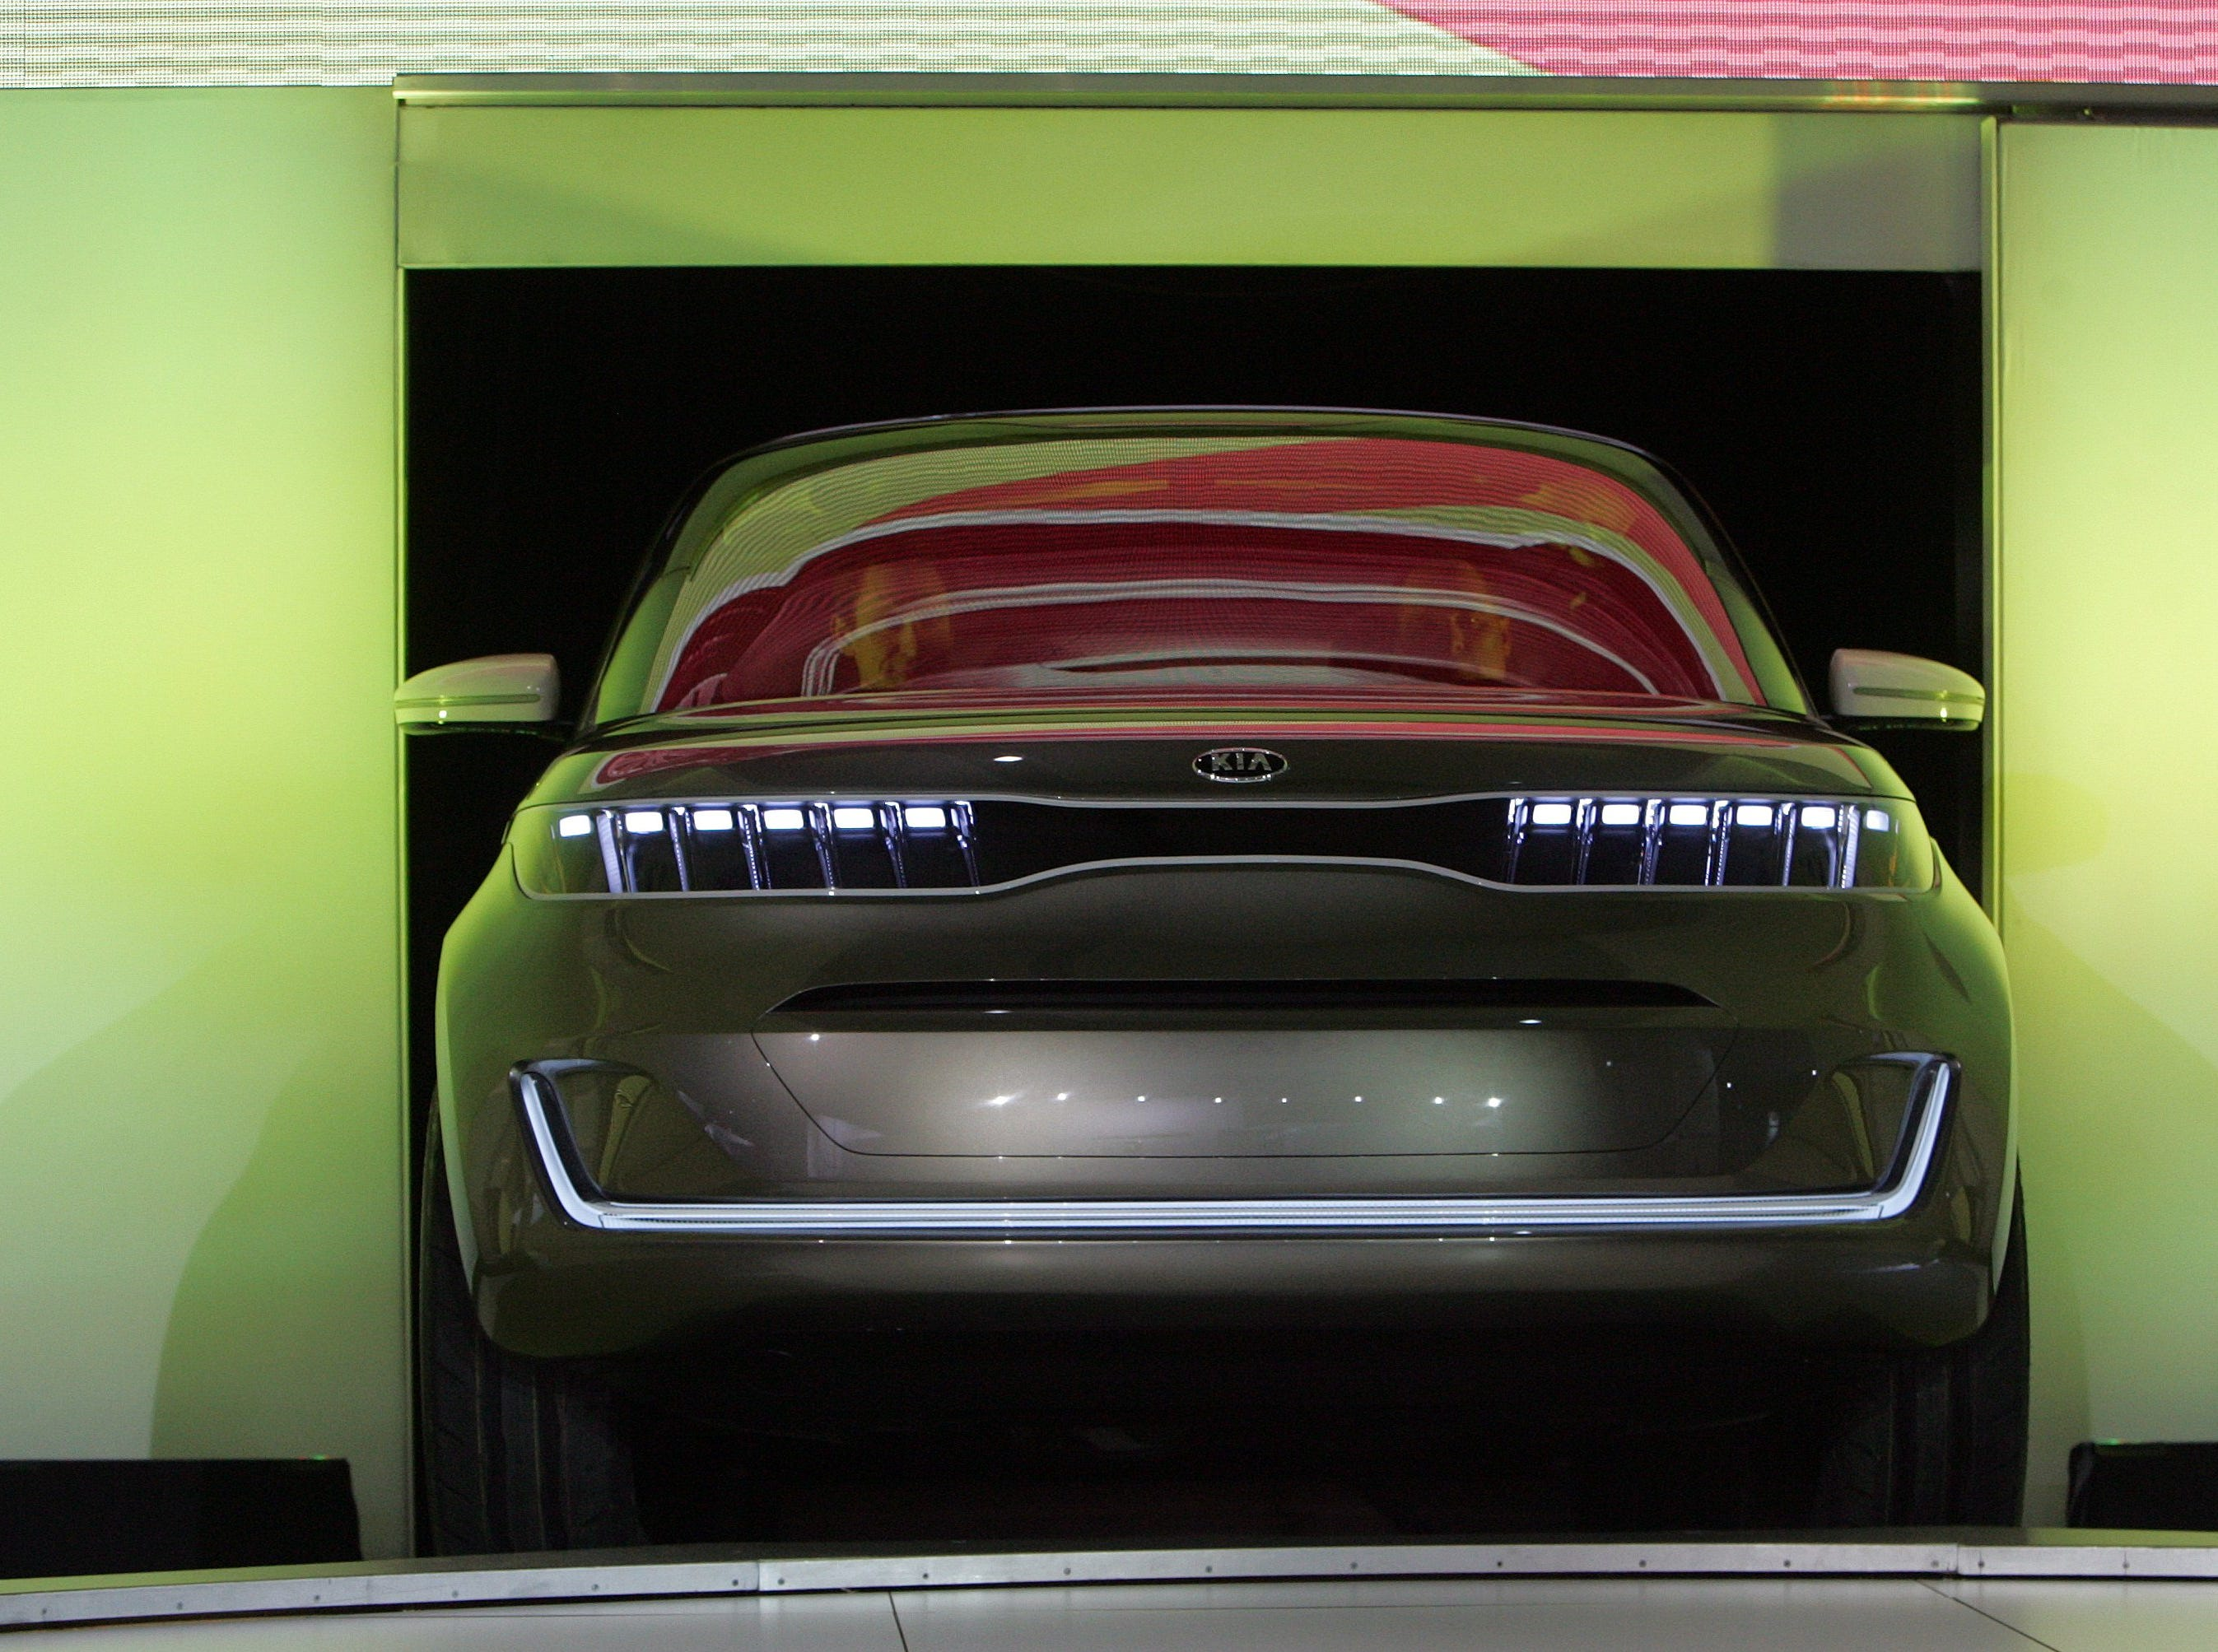 The KIA van concept called the KV7 is driven out onto a platform for the media during the KIA press conference at Cobo Arena at the 2011 North American International Auto Show held at Cobo Center.